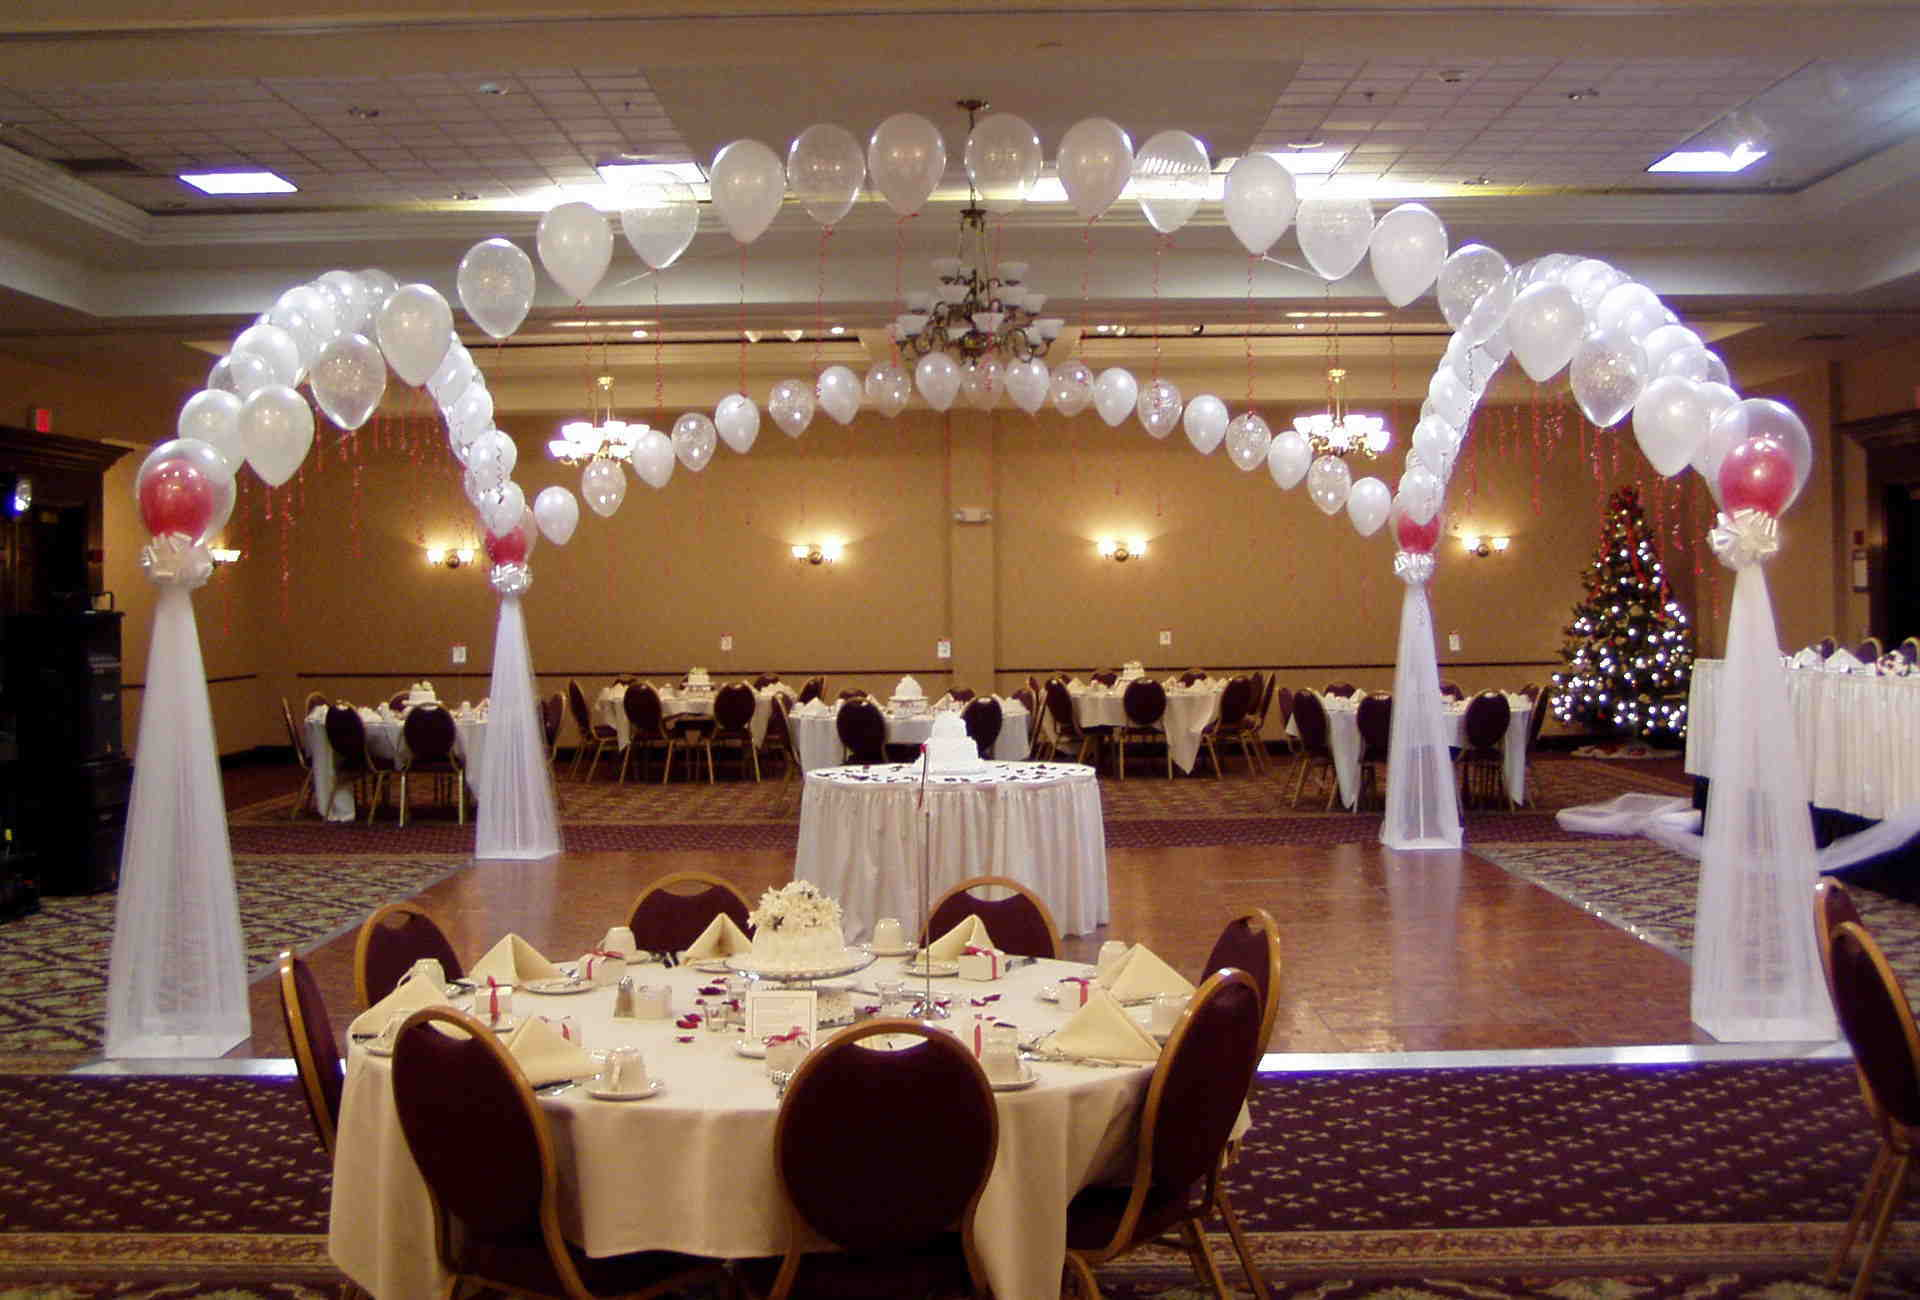 Wedding balloon decorations ideas party favors ideas for Balloon decoration ideas for weddings